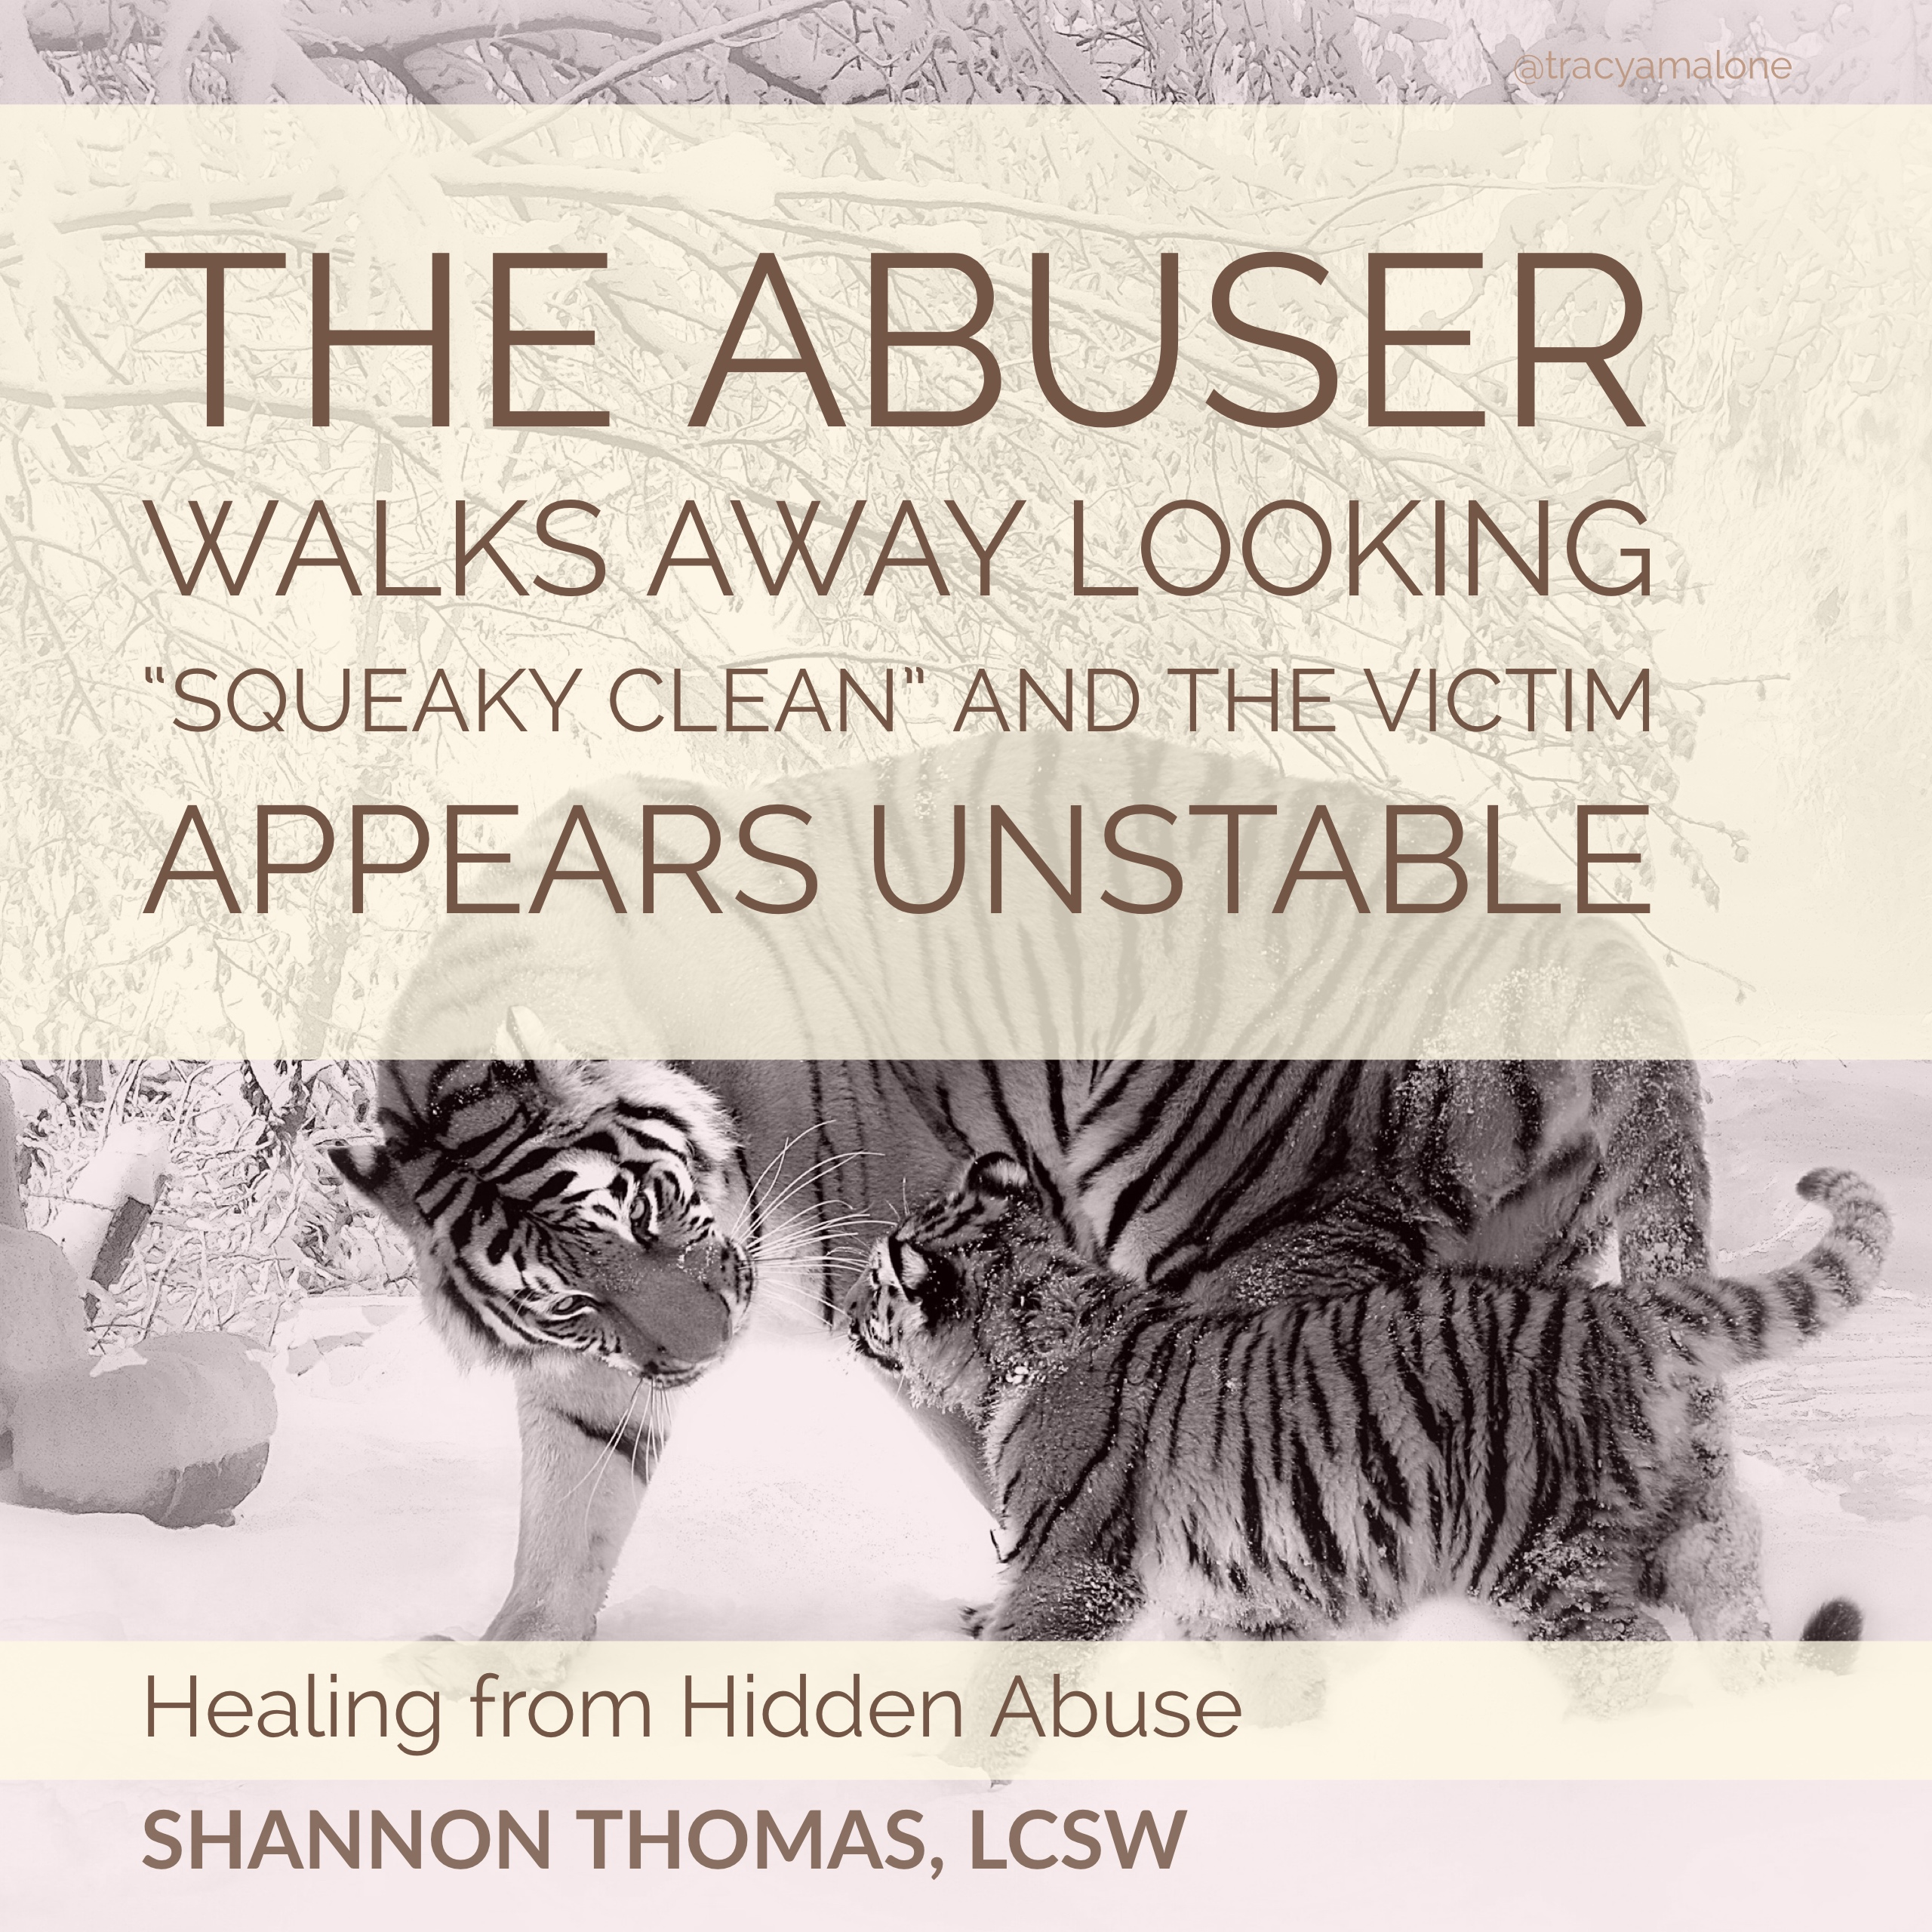 Emotional Abuse Quotes Images Shannon Thomas Healing From Hidden Abuse Quotes  Tracy Malone